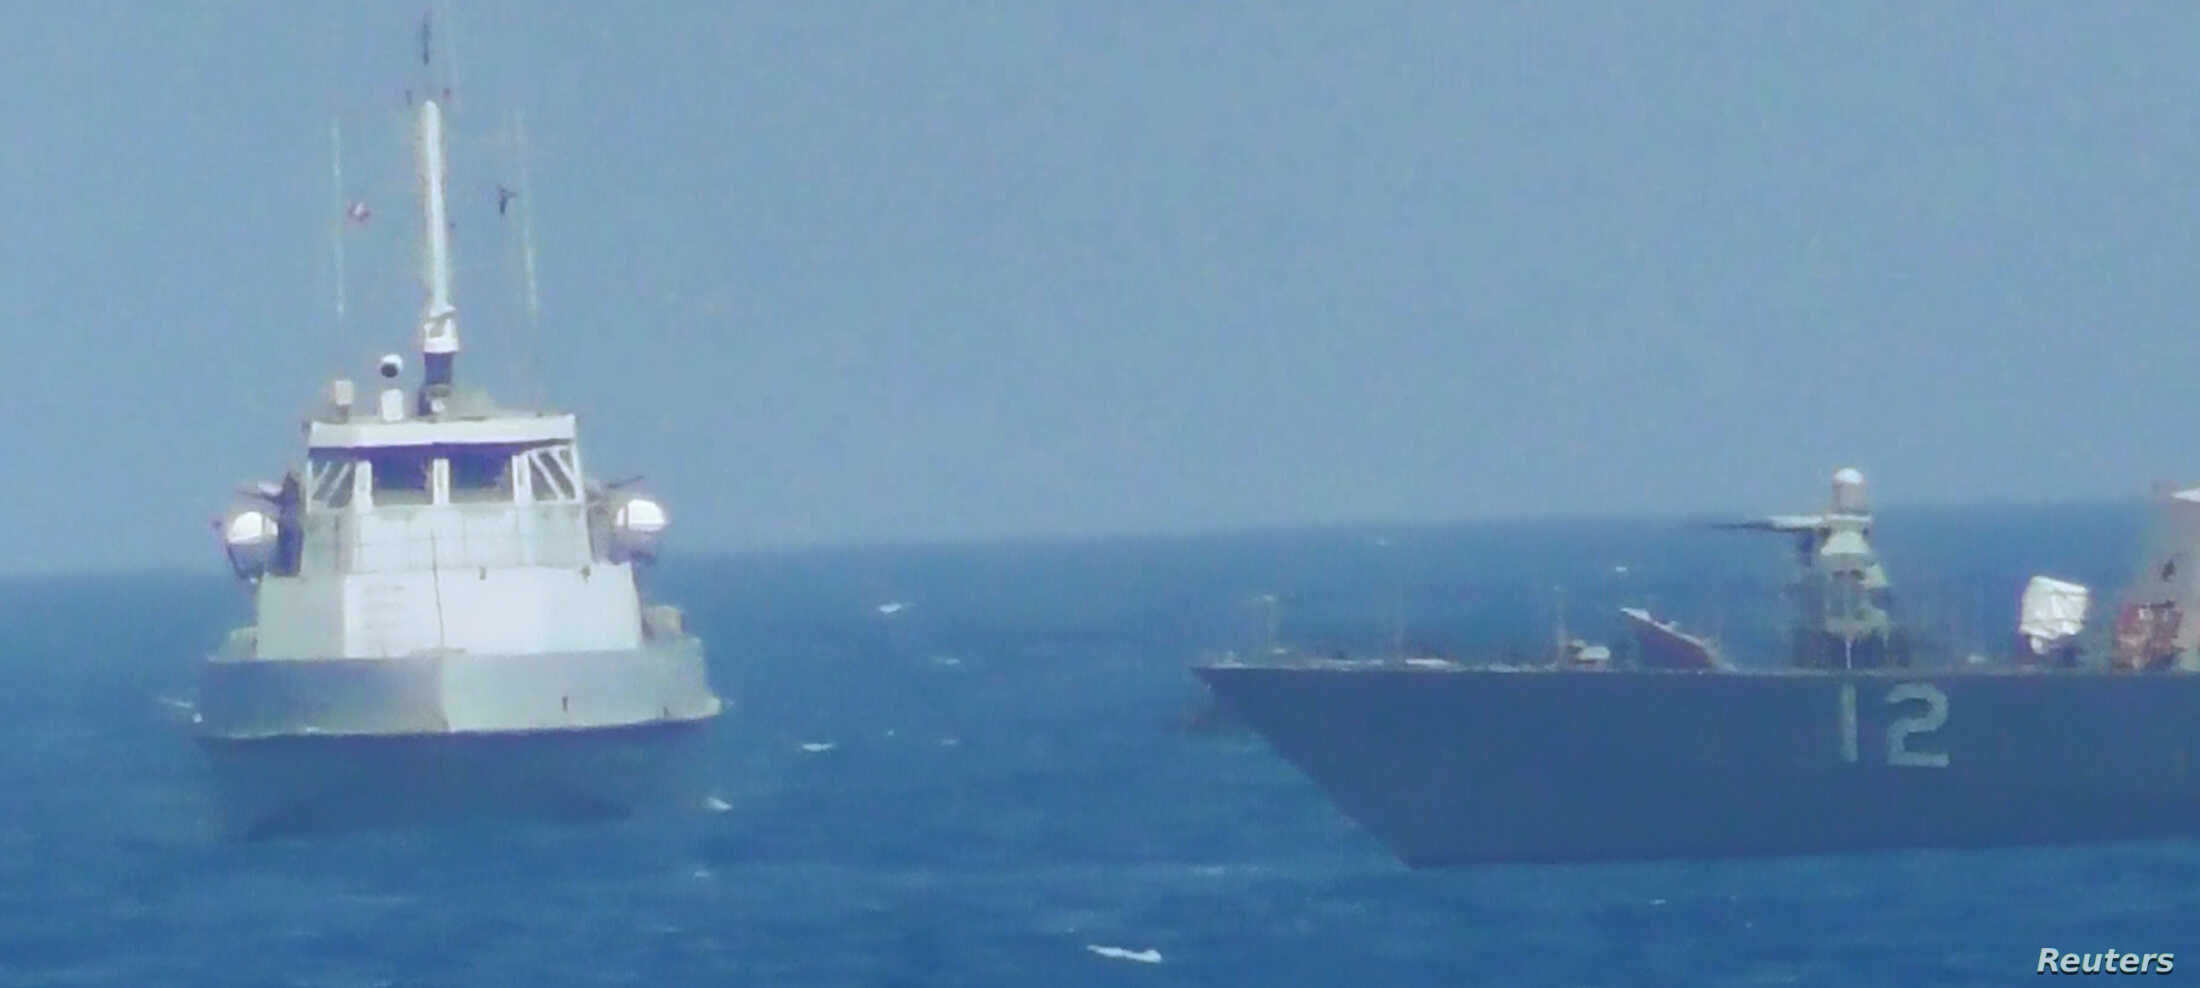 An Iranian vessel steers close to the U.S. Navy coastal patrol craft USS Thunderbolt (R) in the Persian Gulf in a still image from video provided by the U.S. Navy, July 25, 2017.